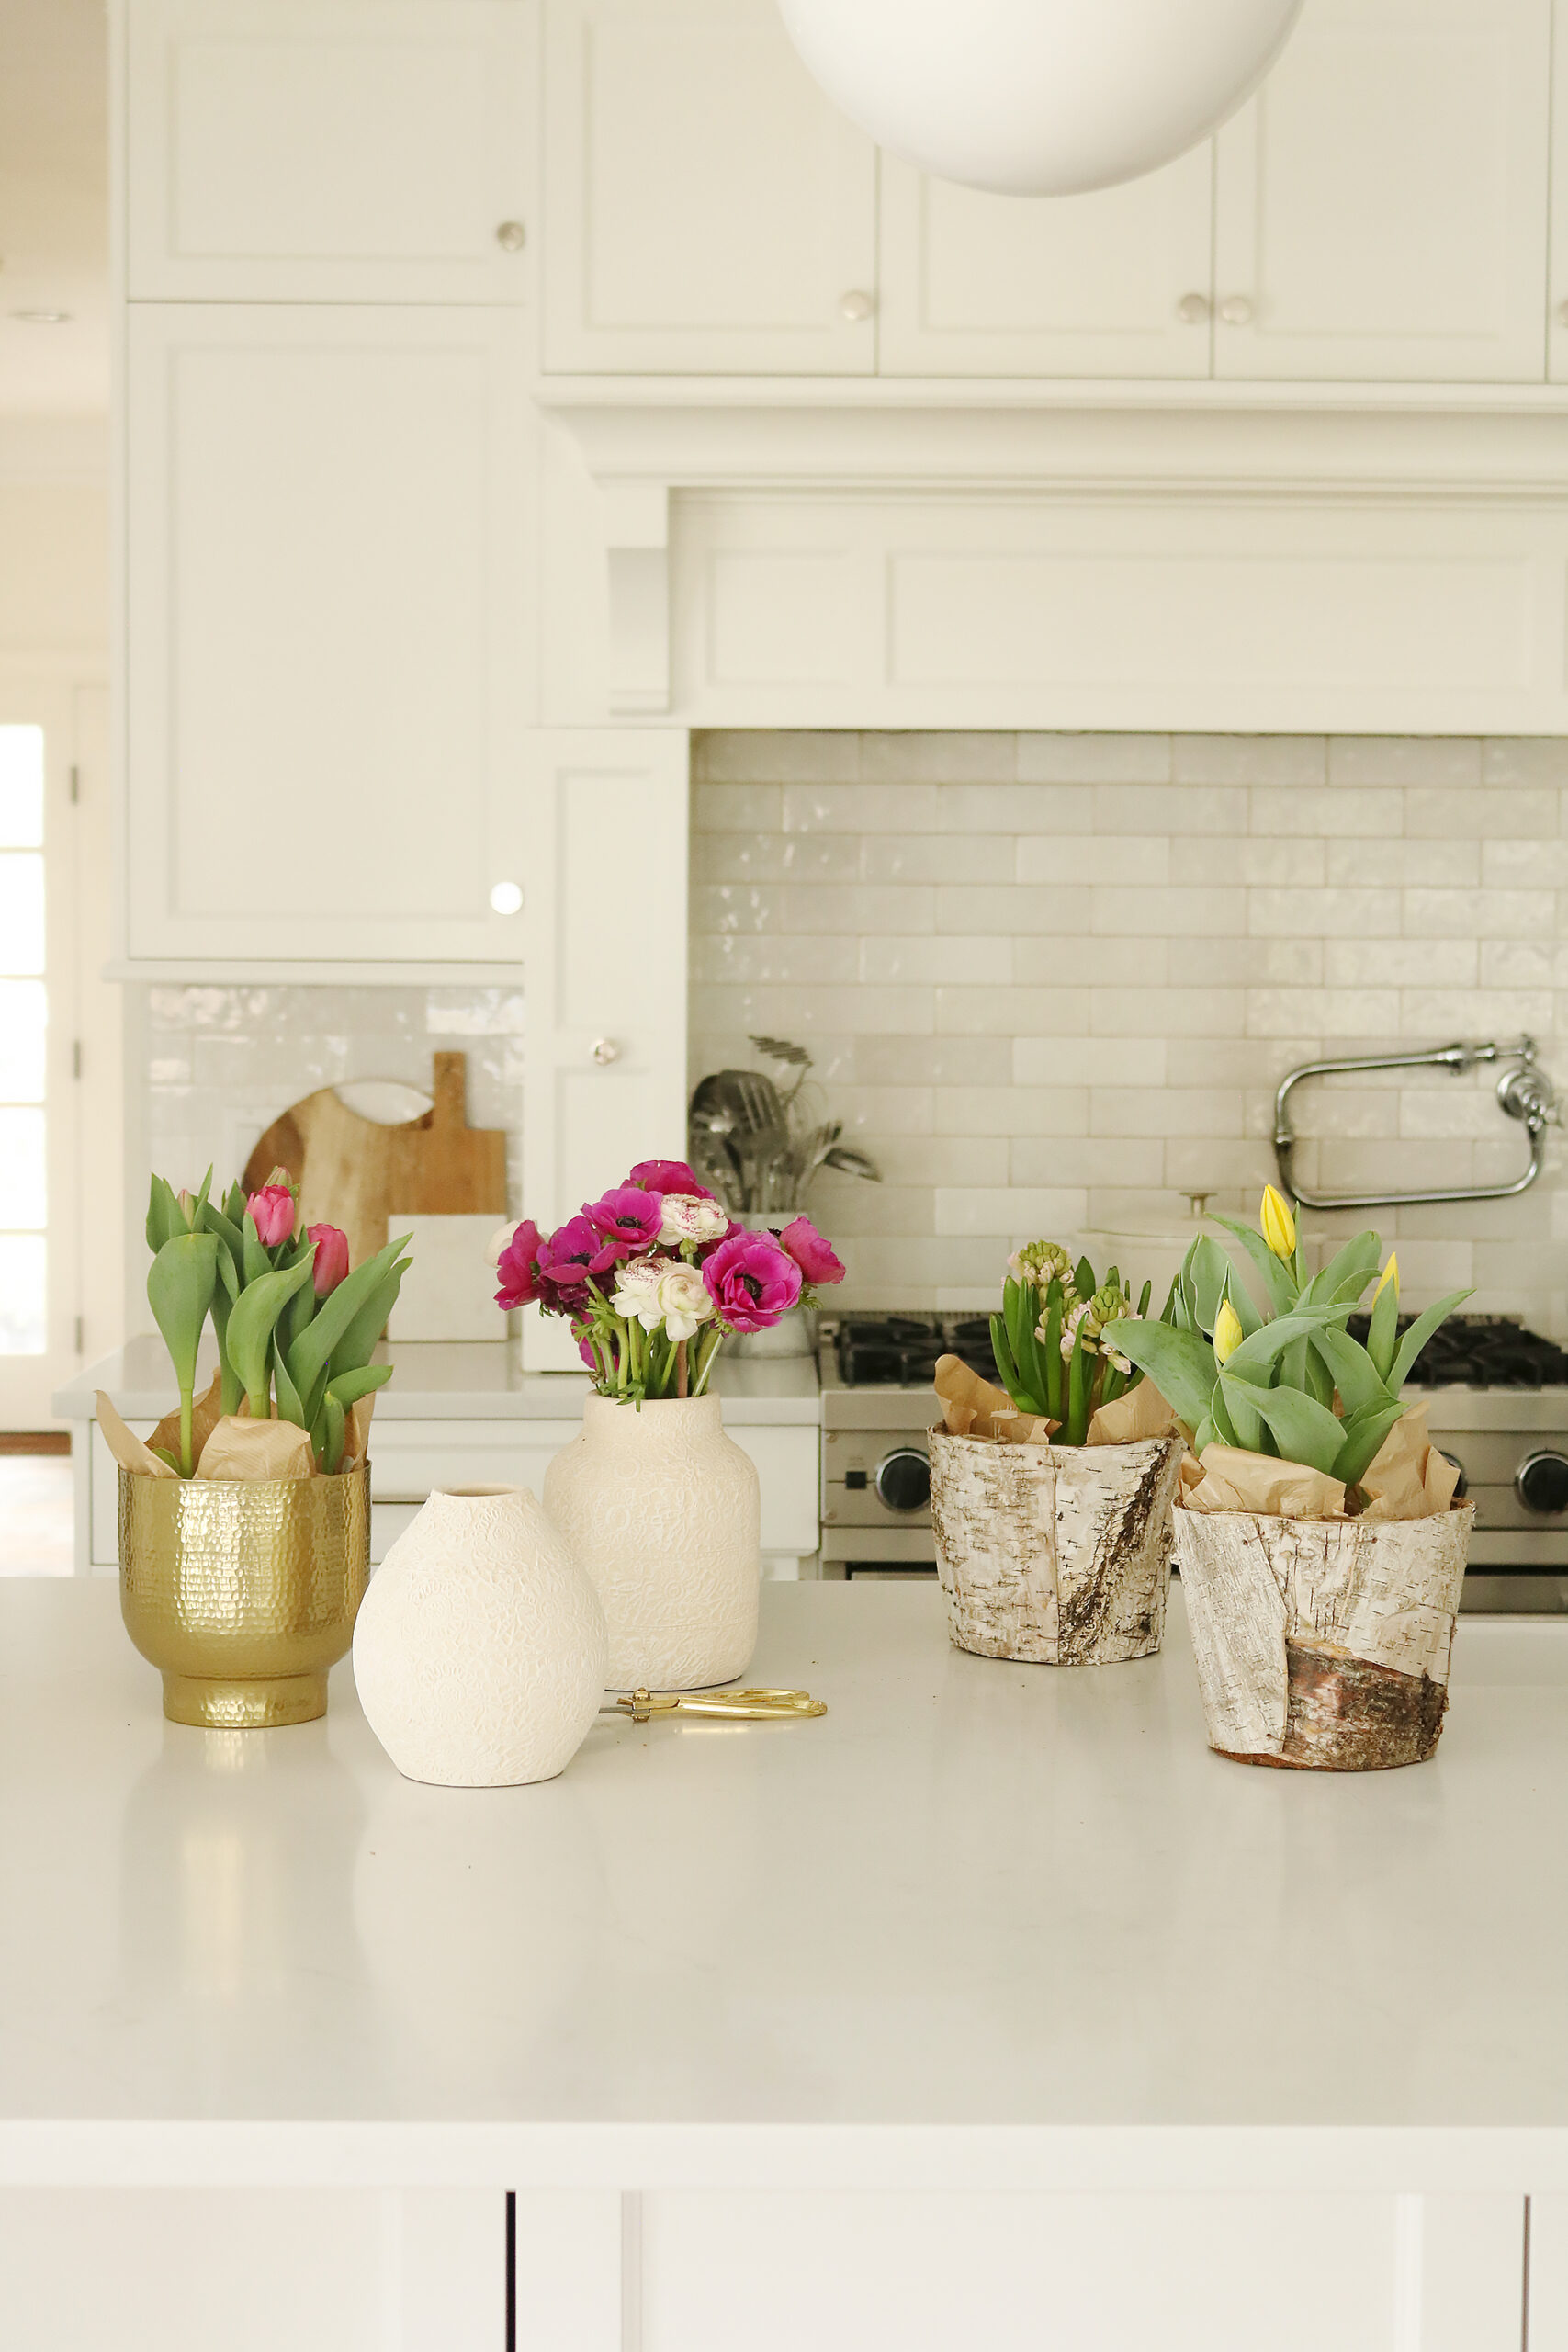 Indoor Styling with Spring Flowers with indoor pots the spring flowers, potted tulips, bring spring flowers indoors || Darling Darleen Top Lifestyle CT Bloggers #springflowers #pottedflowers